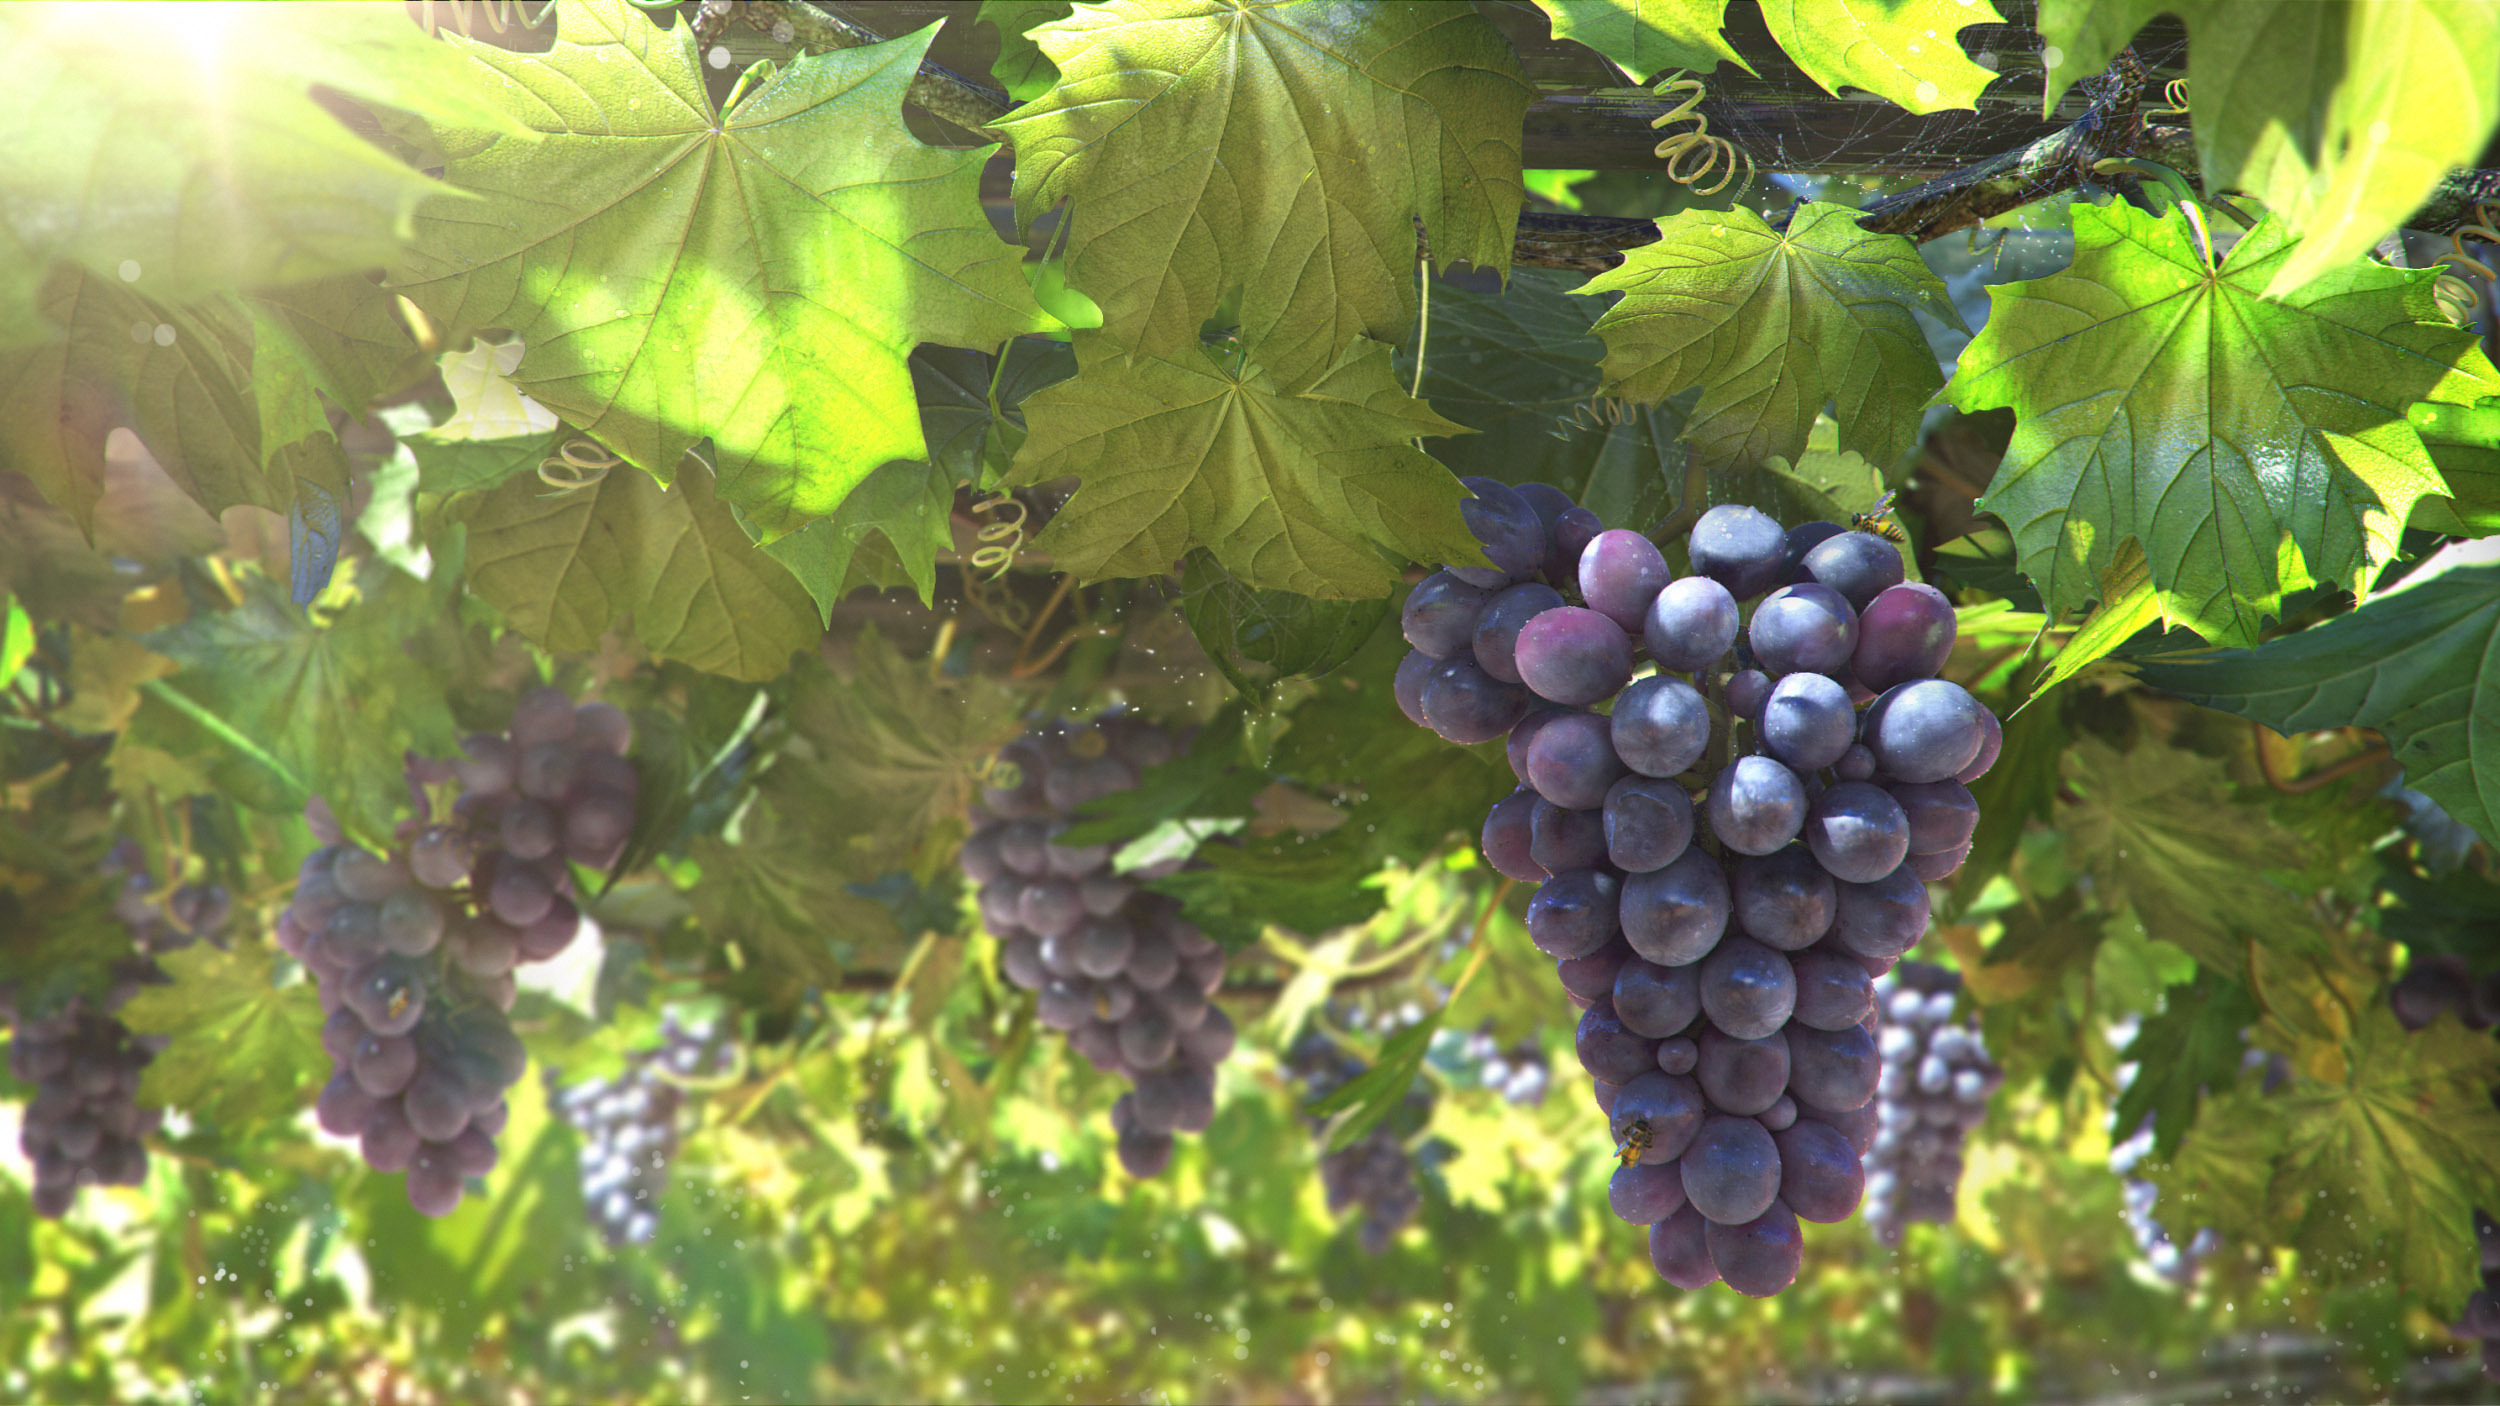 Grapes HD Wallpapers   THIS Wallpaper 2500x1406